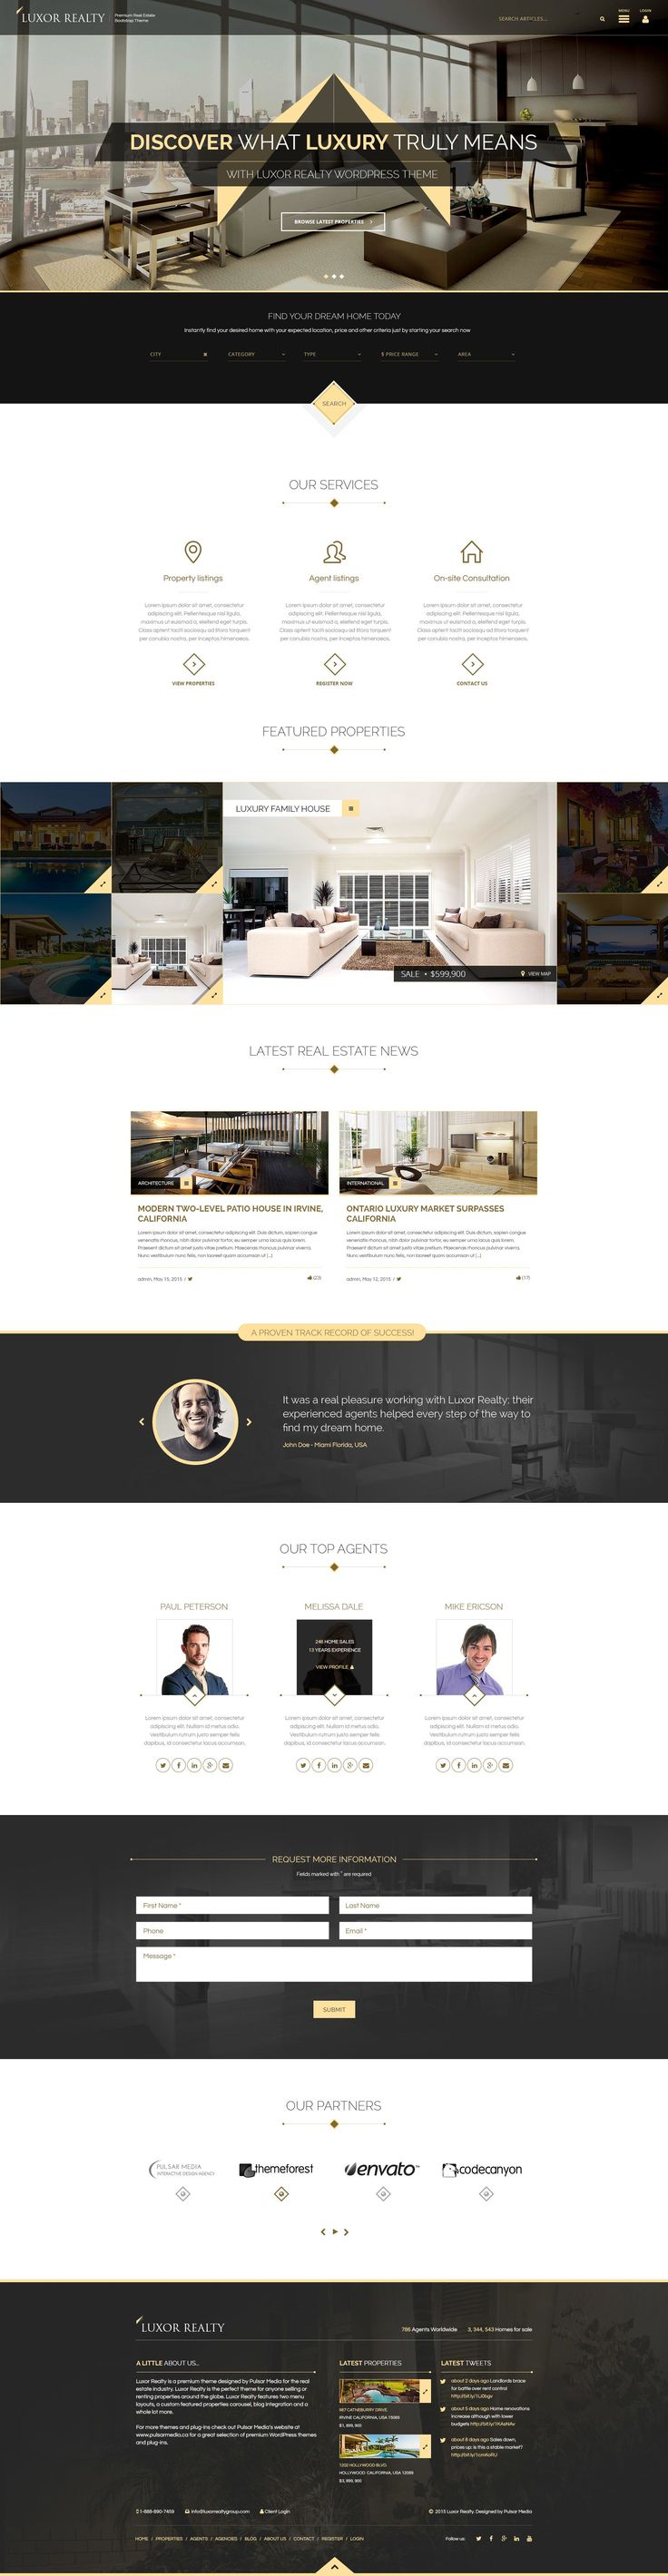 LUXOR is a premium real estate WordPress theme designed for the Real Estate market. It is the perfect theme for selling #homes and #properties such as condos, #apartments, homes and commercial units. #wptheme #website